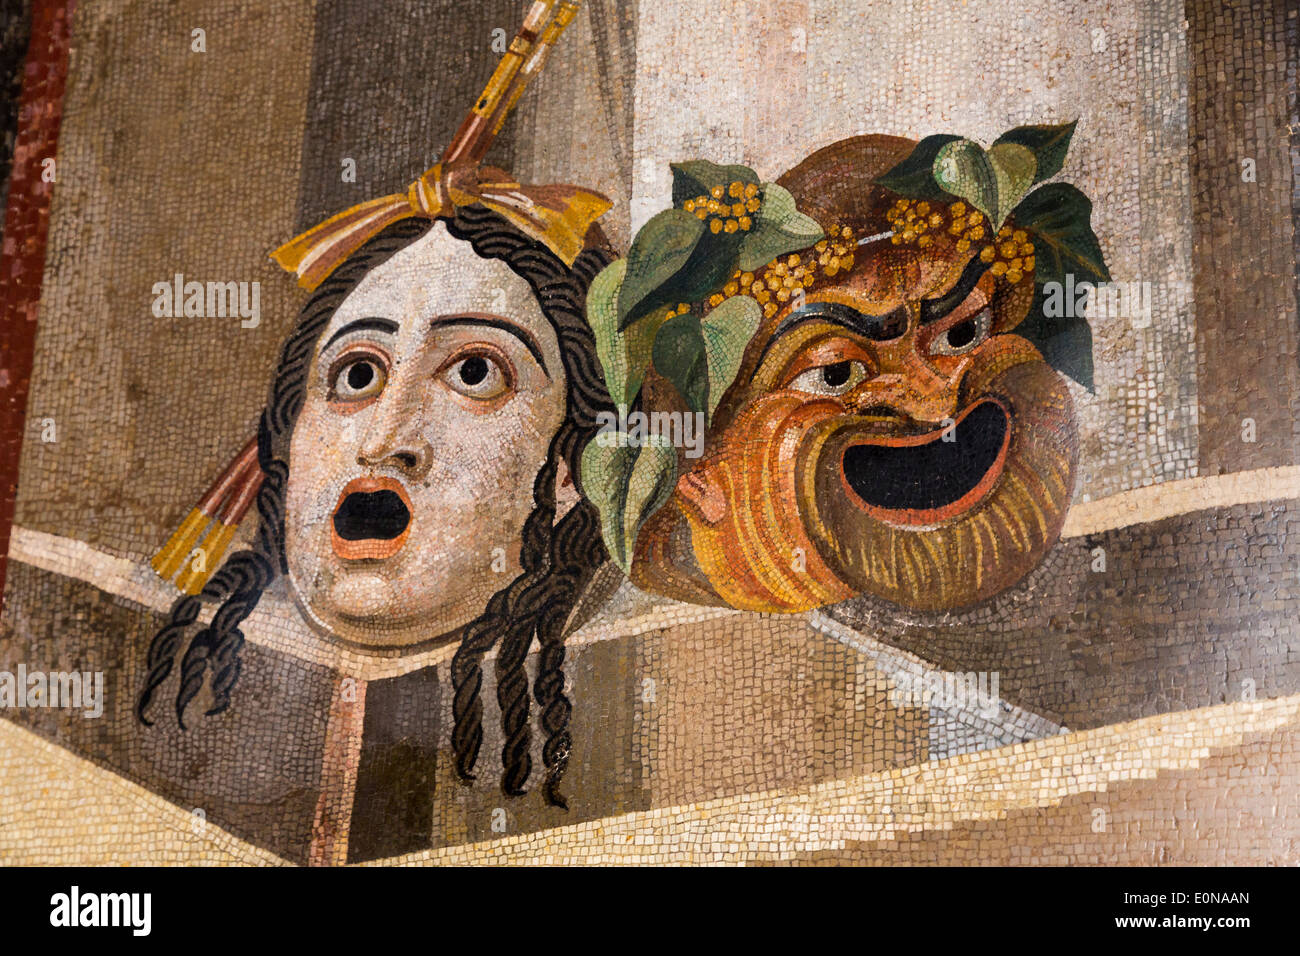 Mosaic with theatrical masks, Capitoline Museums, Rome, Italy - Stock Image